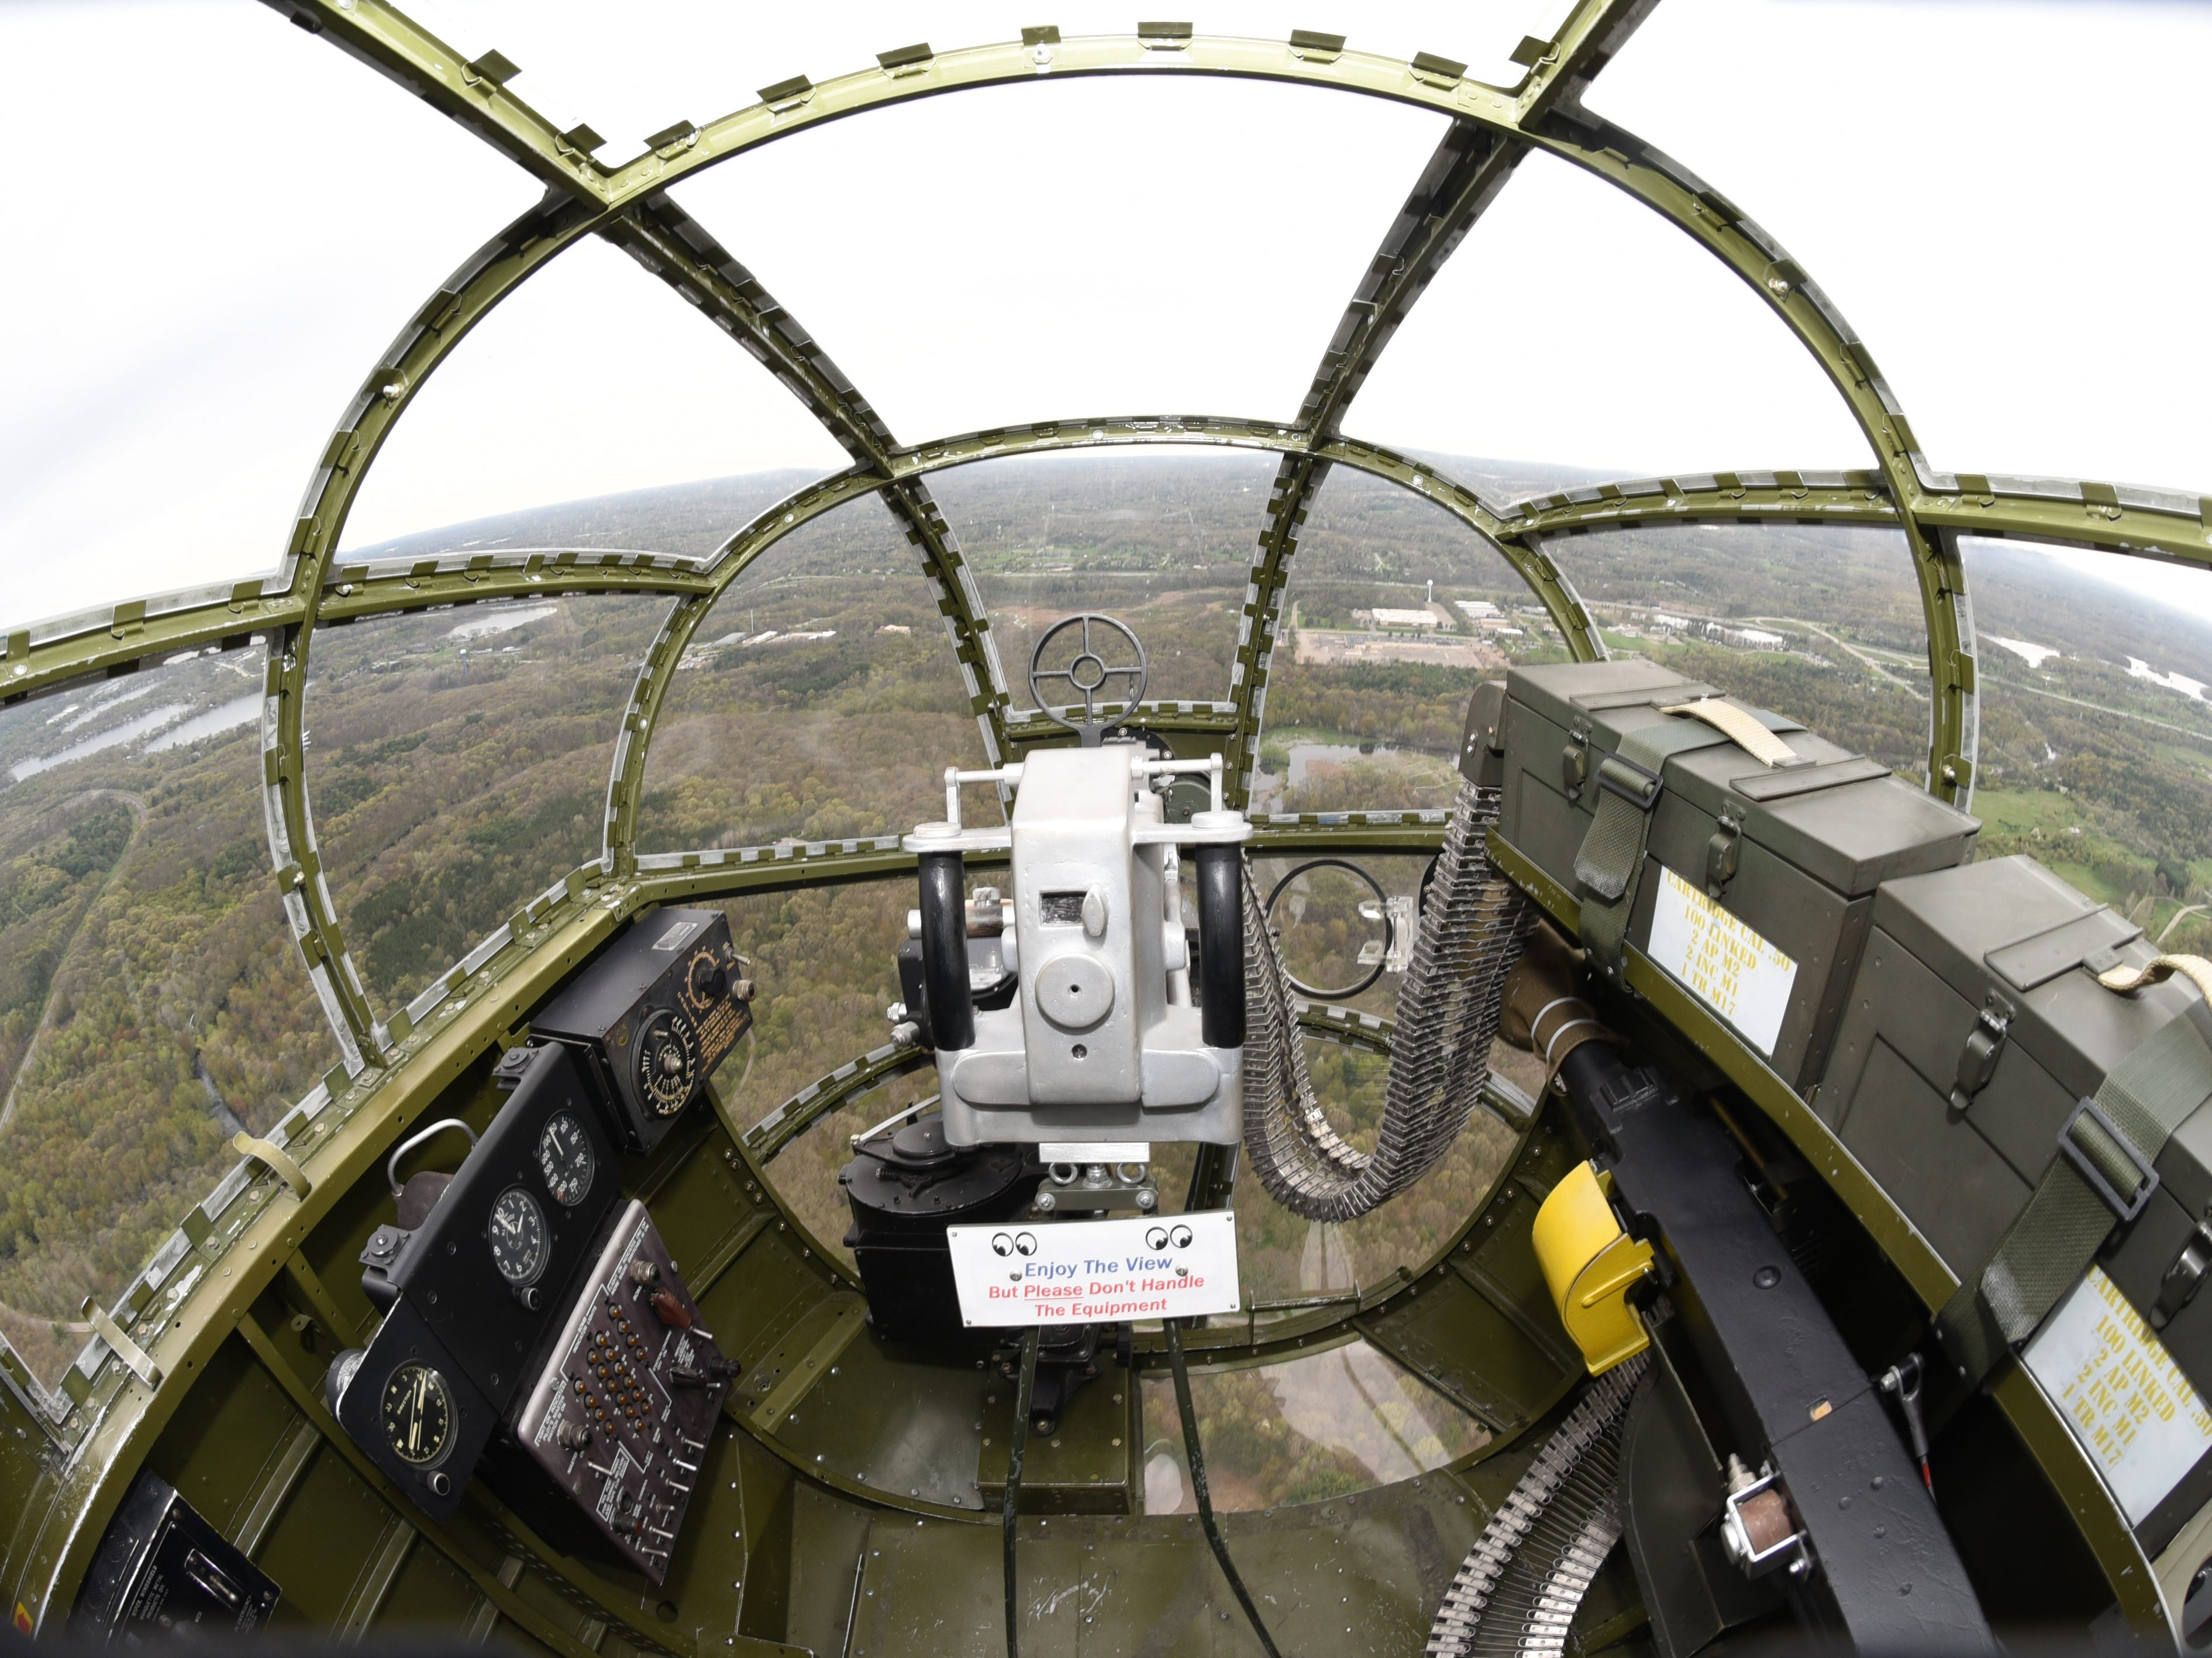 A spectacular view from the B-25 Mitchell Yankee Warrior's nose gunner seat during flight as the Yankee Air MuseumÕs B-25 Air Adventure program begins their season on Saturday, May 11, 2019.